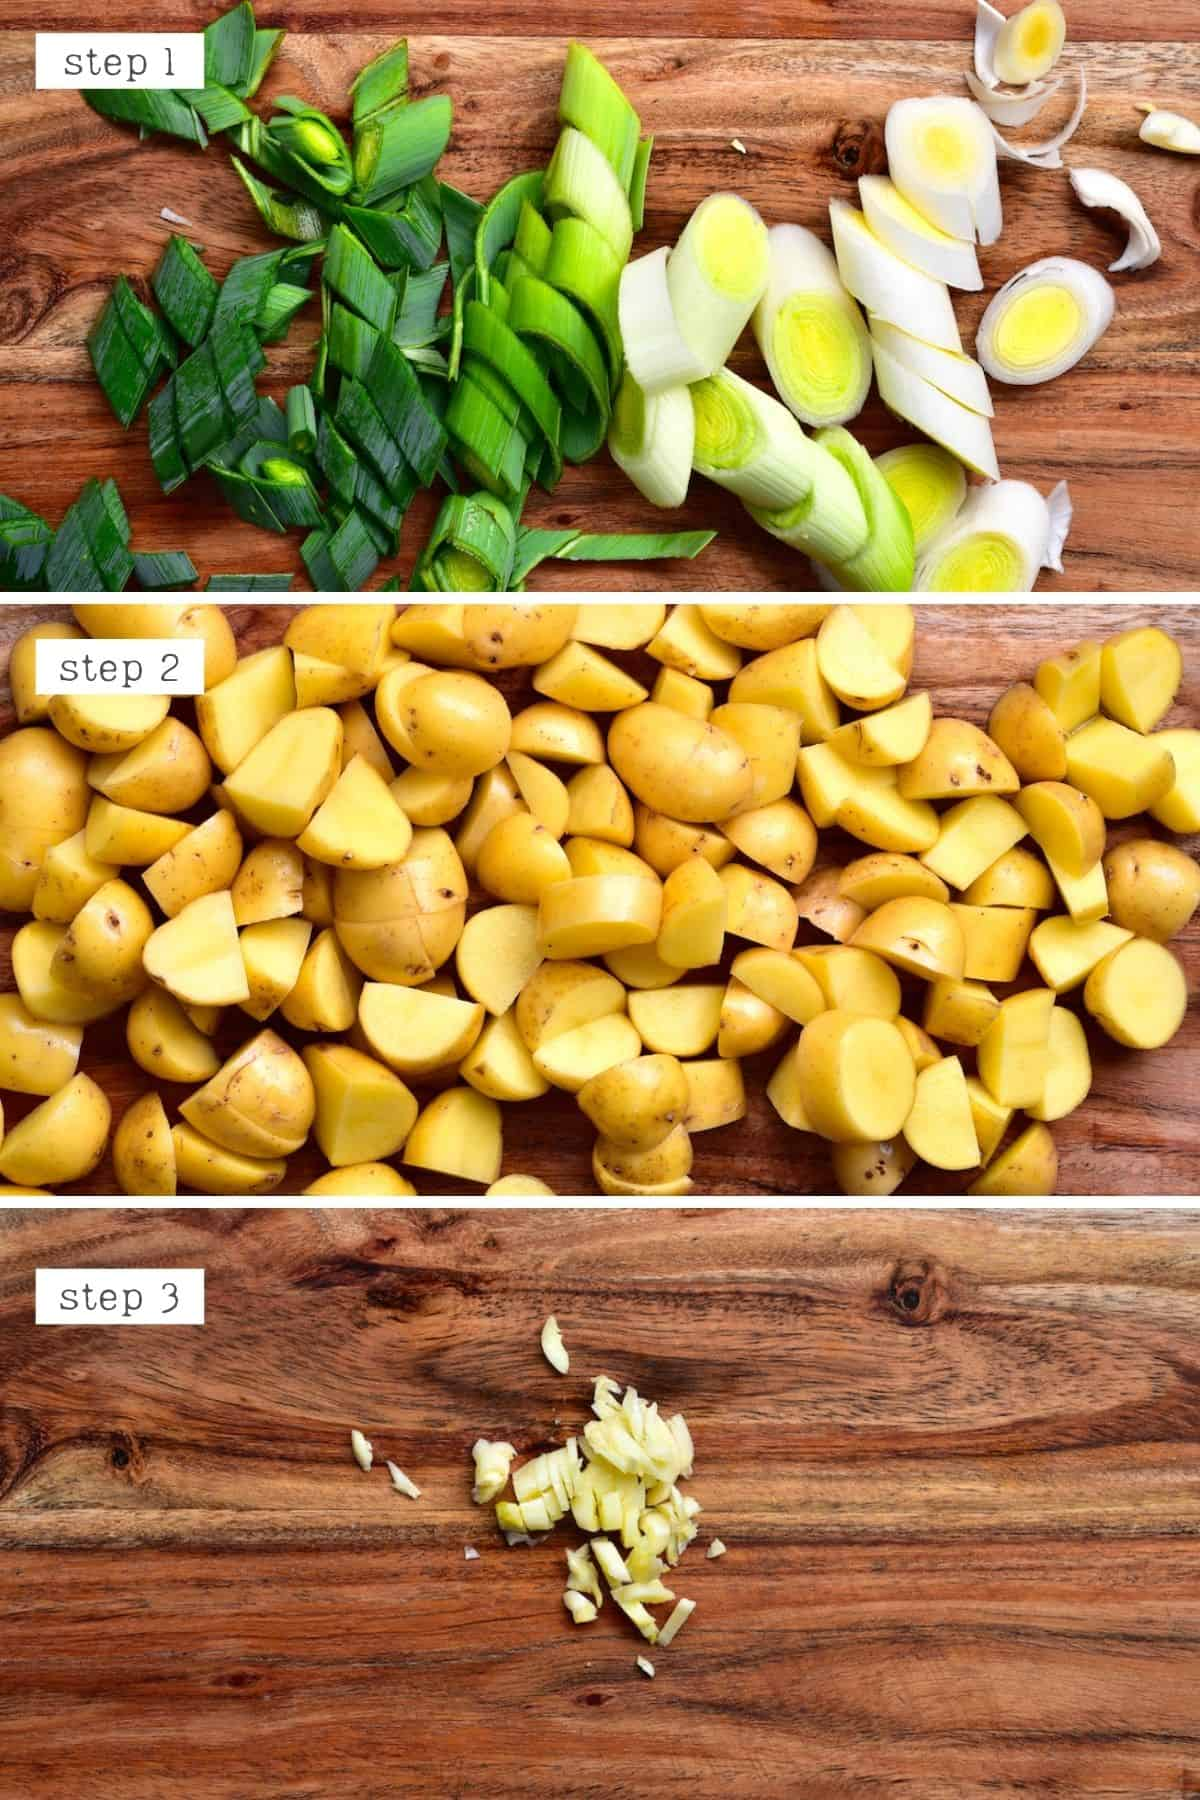 Steps for cutting leek and potatoes